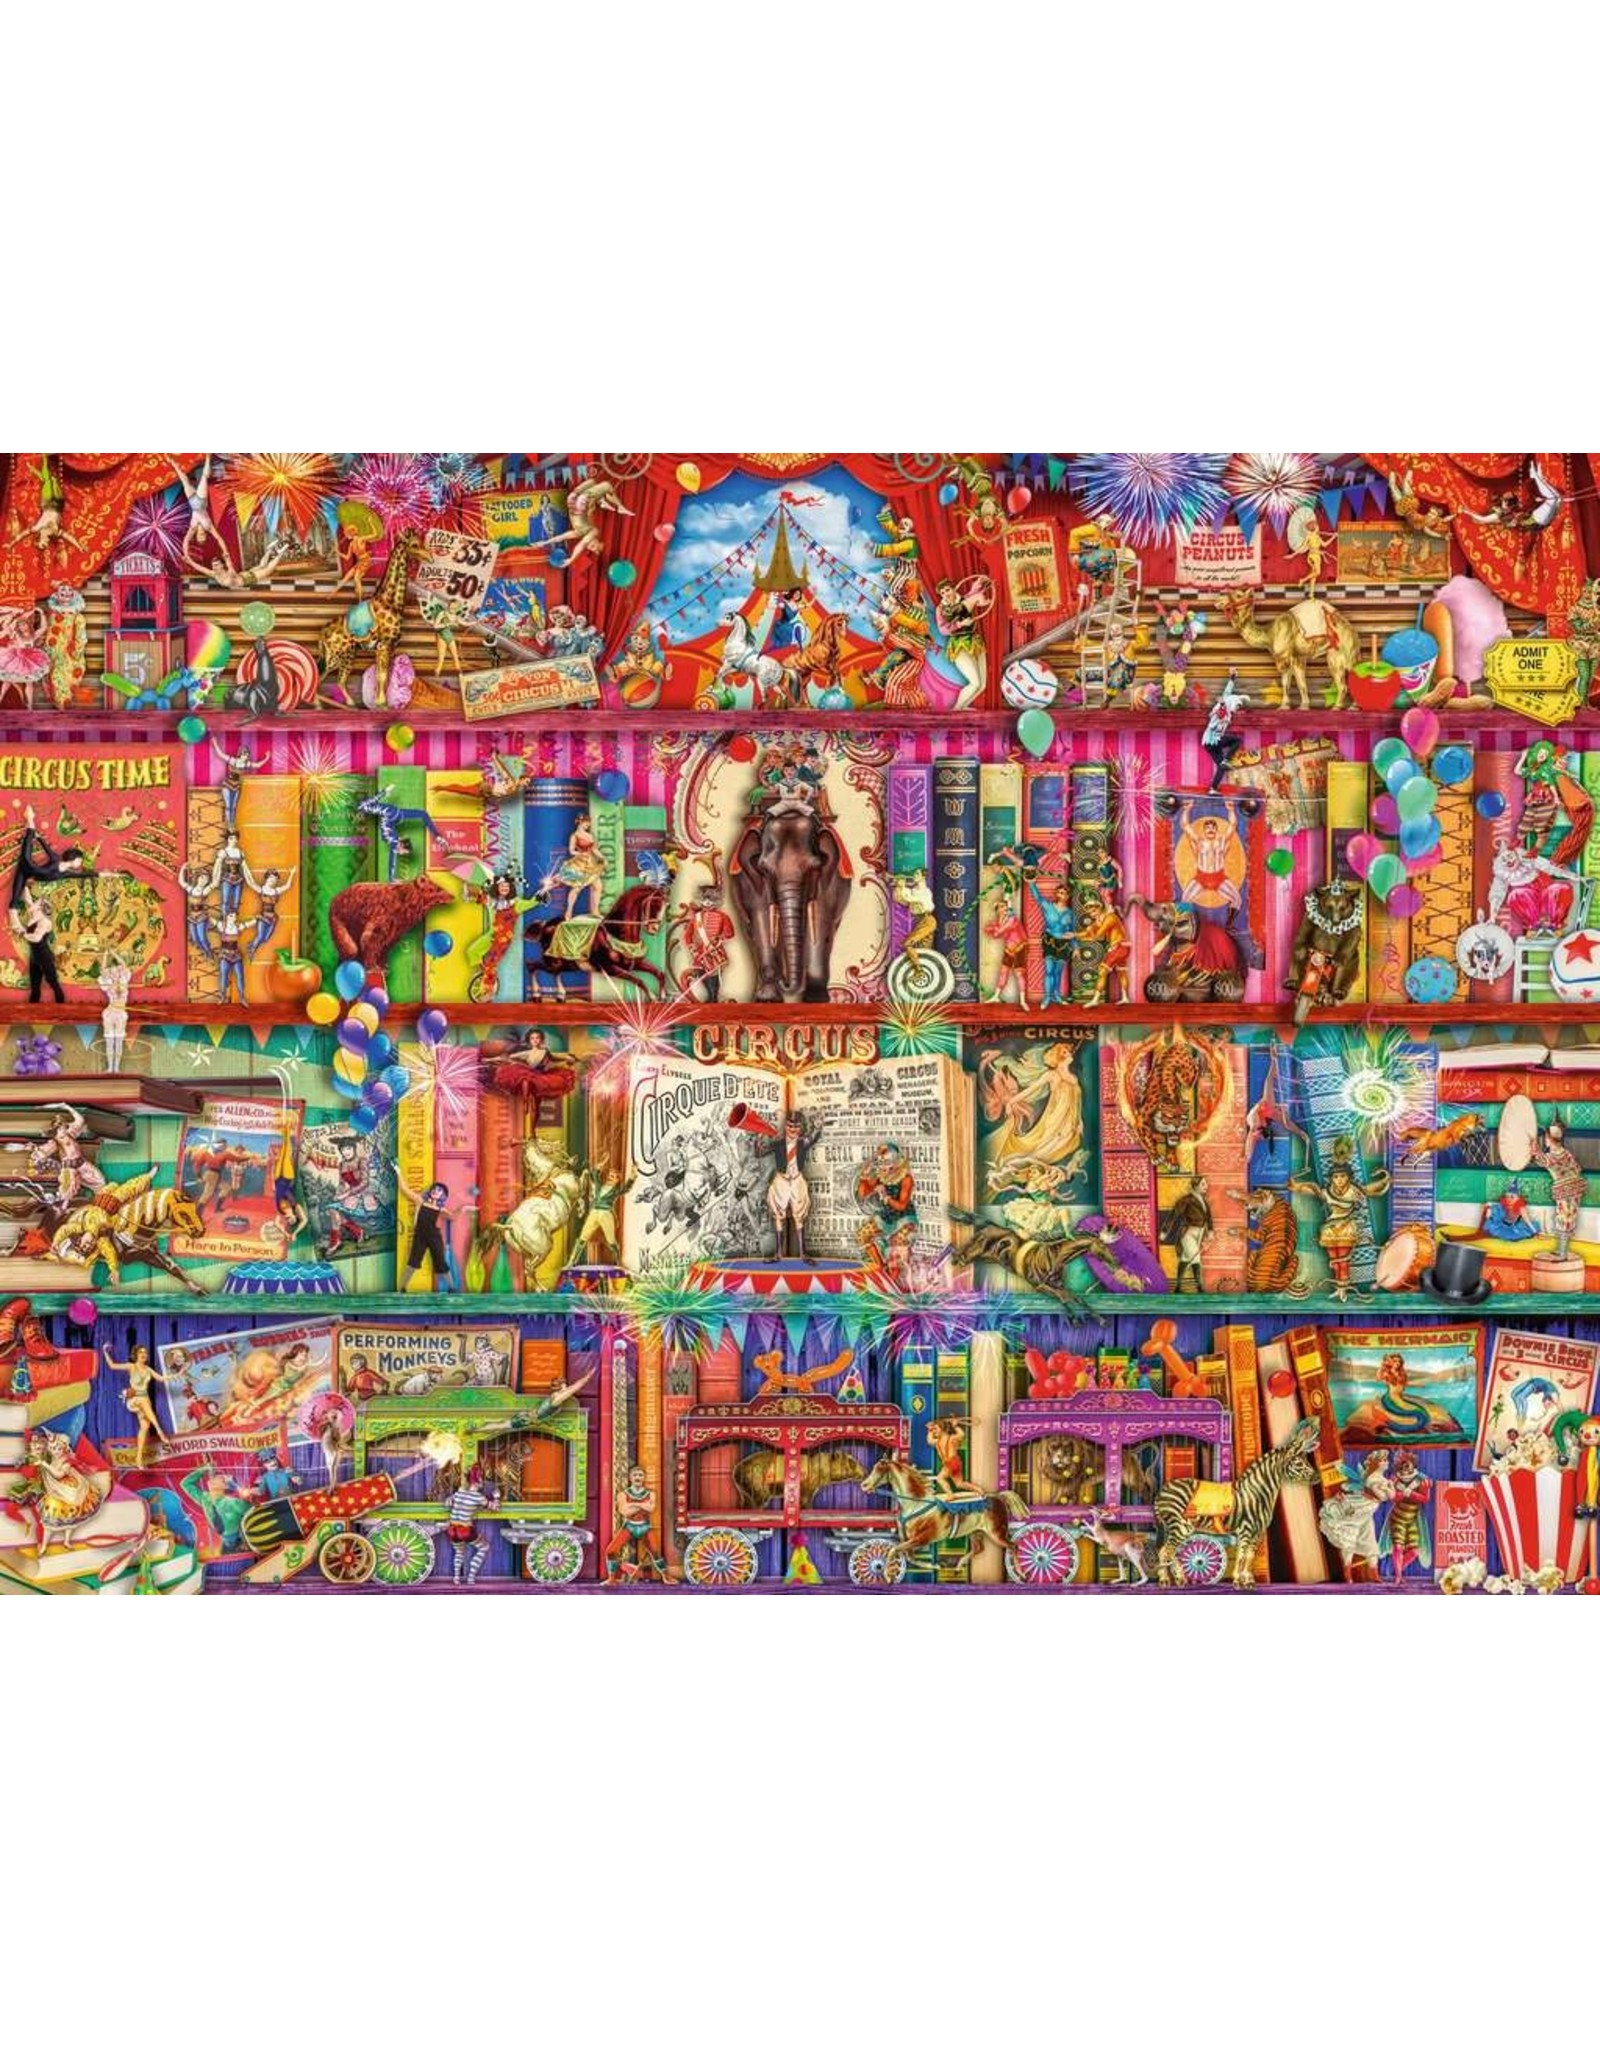 Ravensburger The Greatest Show on Earth 1000pc Puzzle